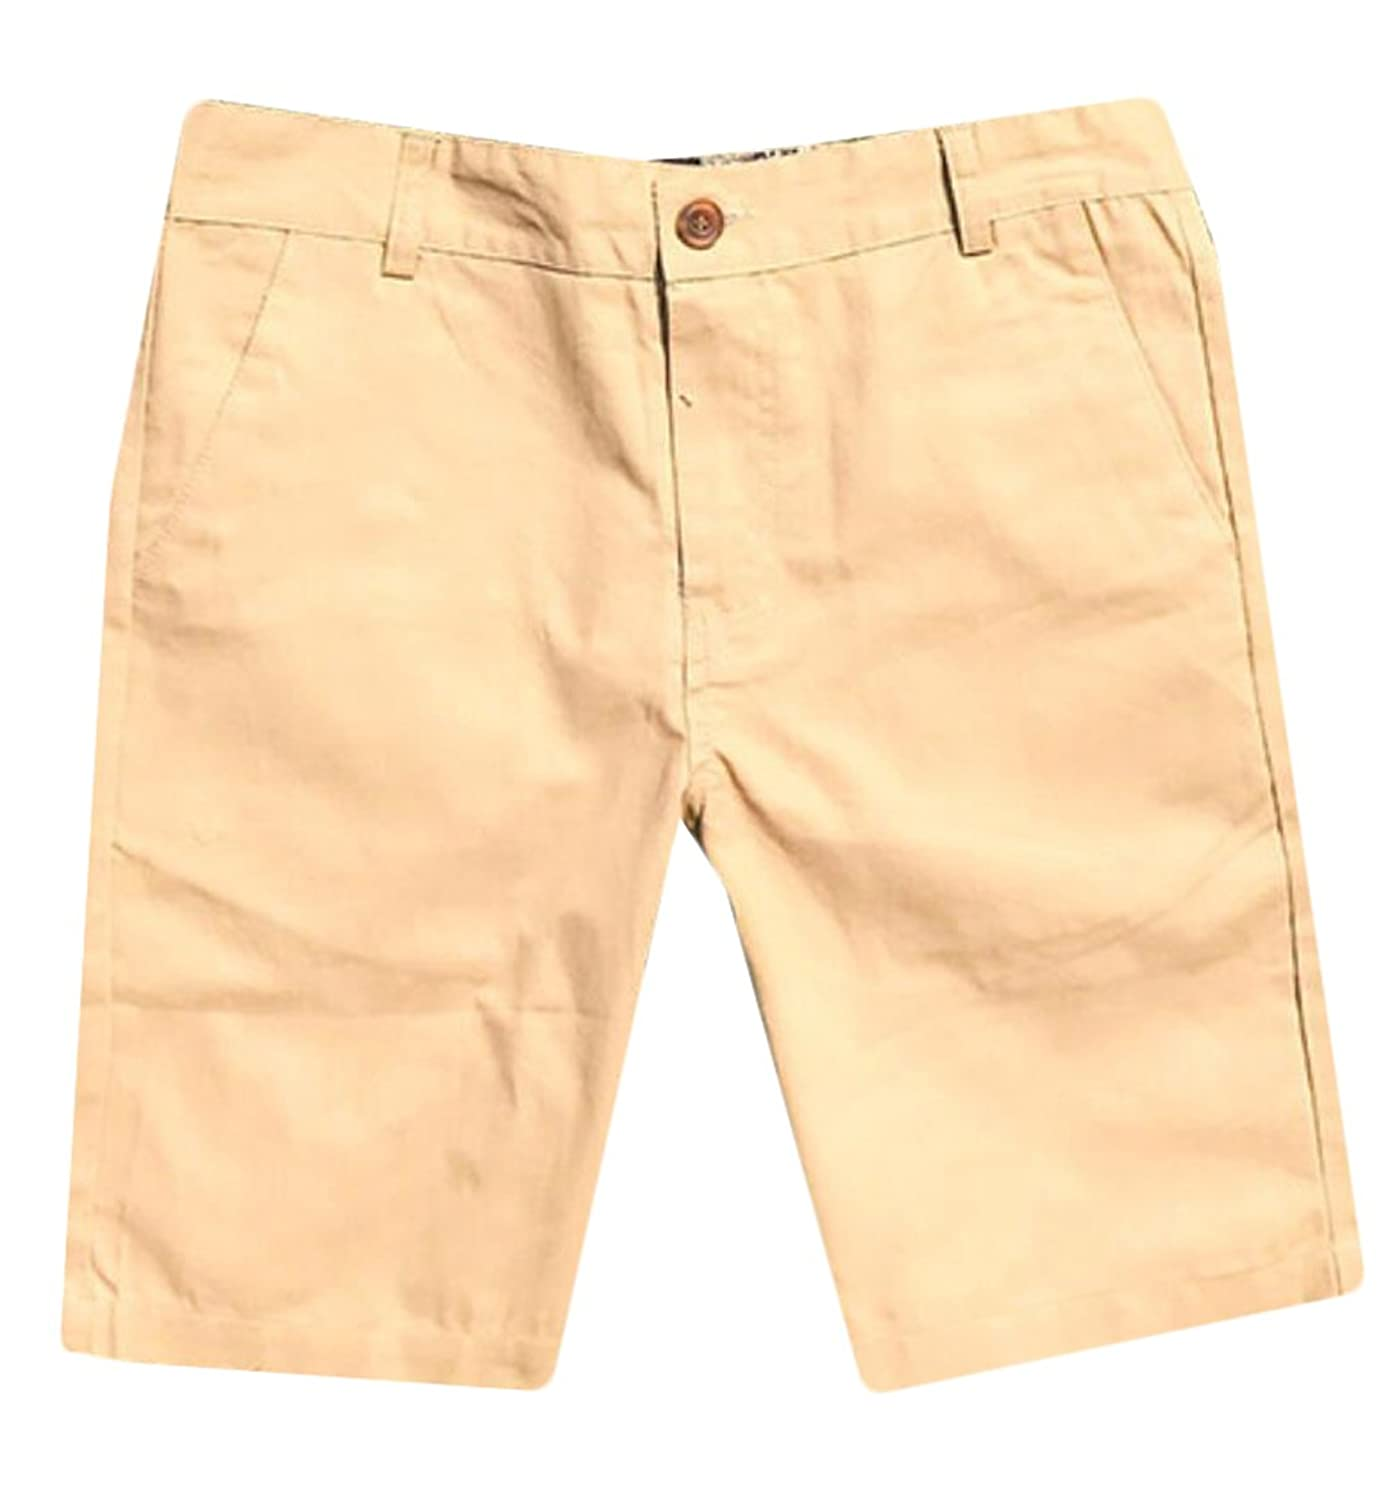 Zago Mens Solid Color Slim Fit Twil Flat-Front Chino Shorts